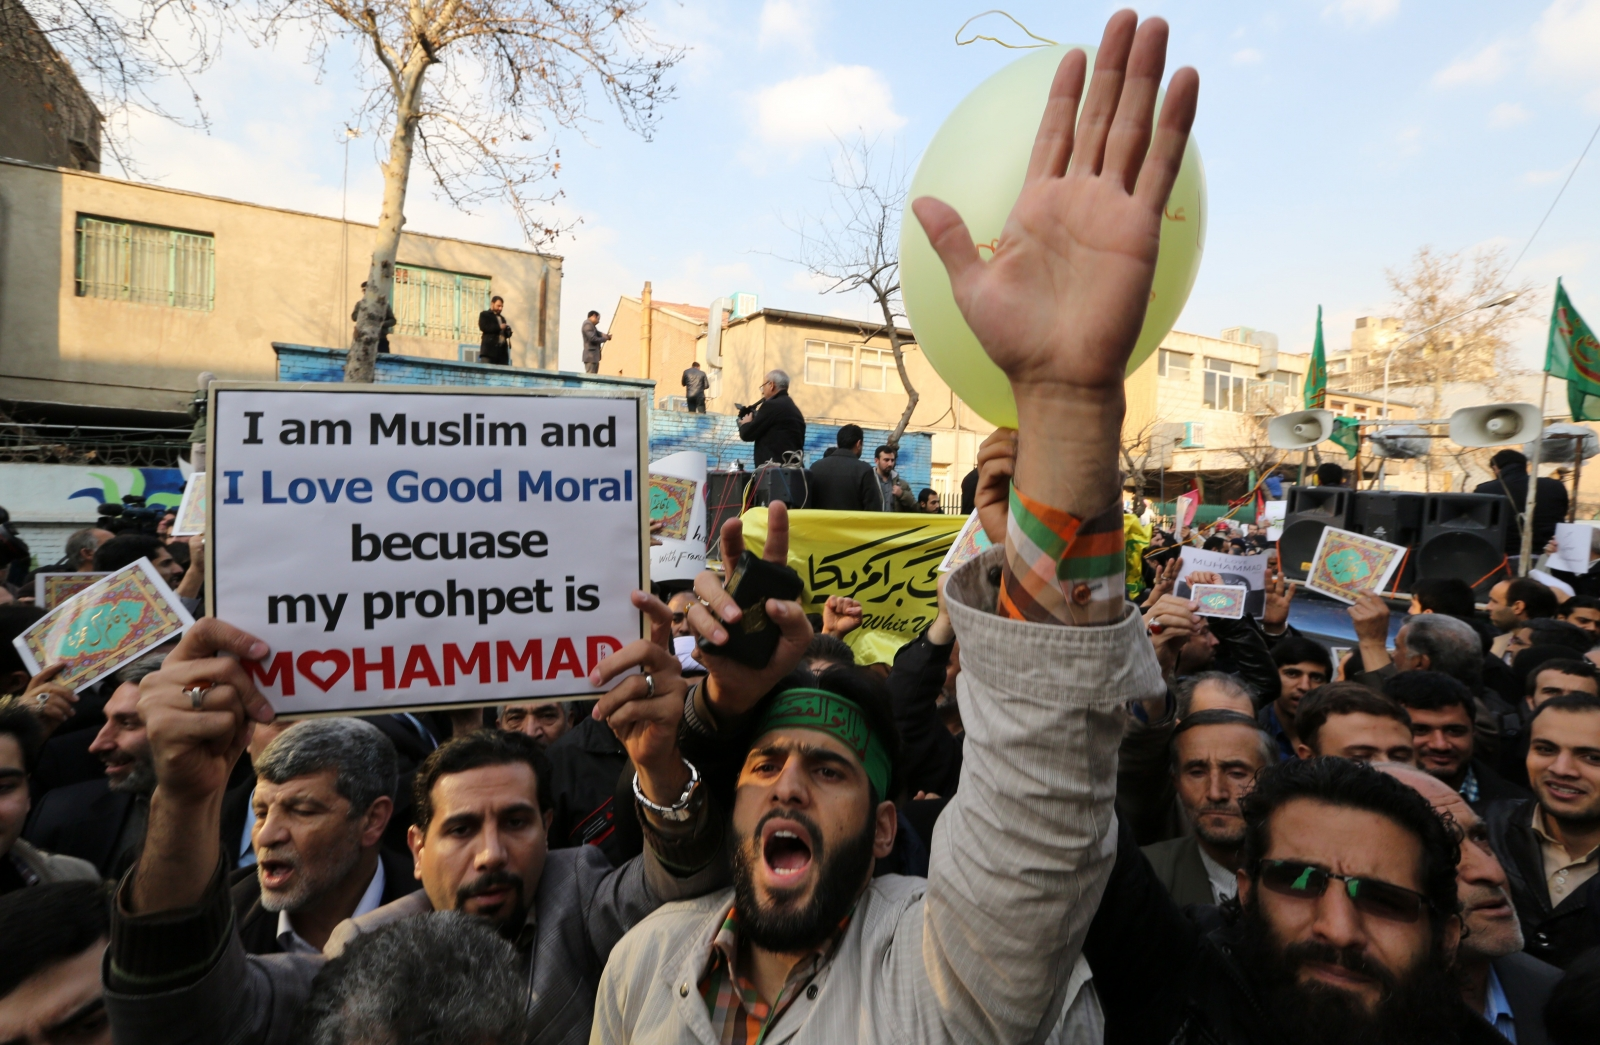 Protesters in Tehran demonstrate outside the French embassy in response to a front page cartoon deicting the prophet Mohammed published by satirical magazine Charlie Hebdo. (Getty)